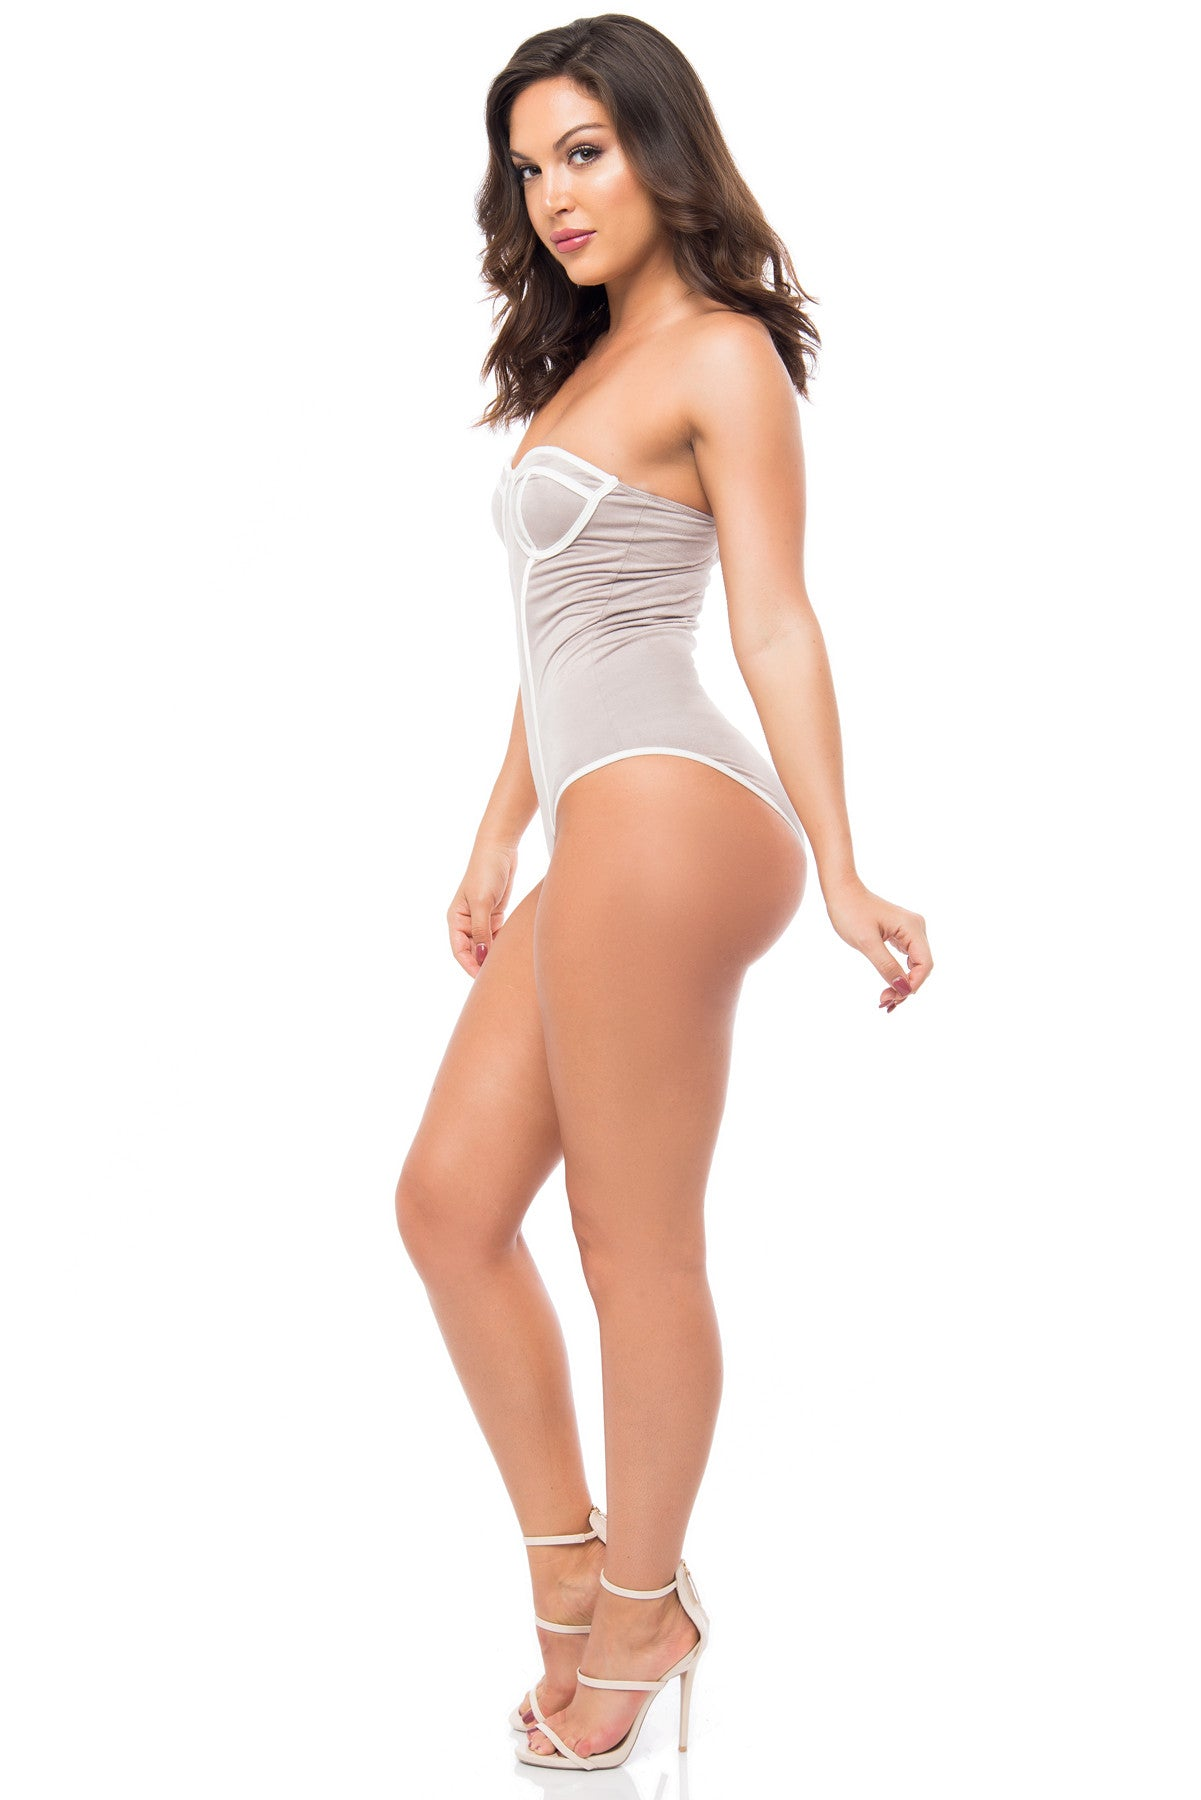 Danny Suede Gray Bodysuit - Fashion Effect Store  - 2